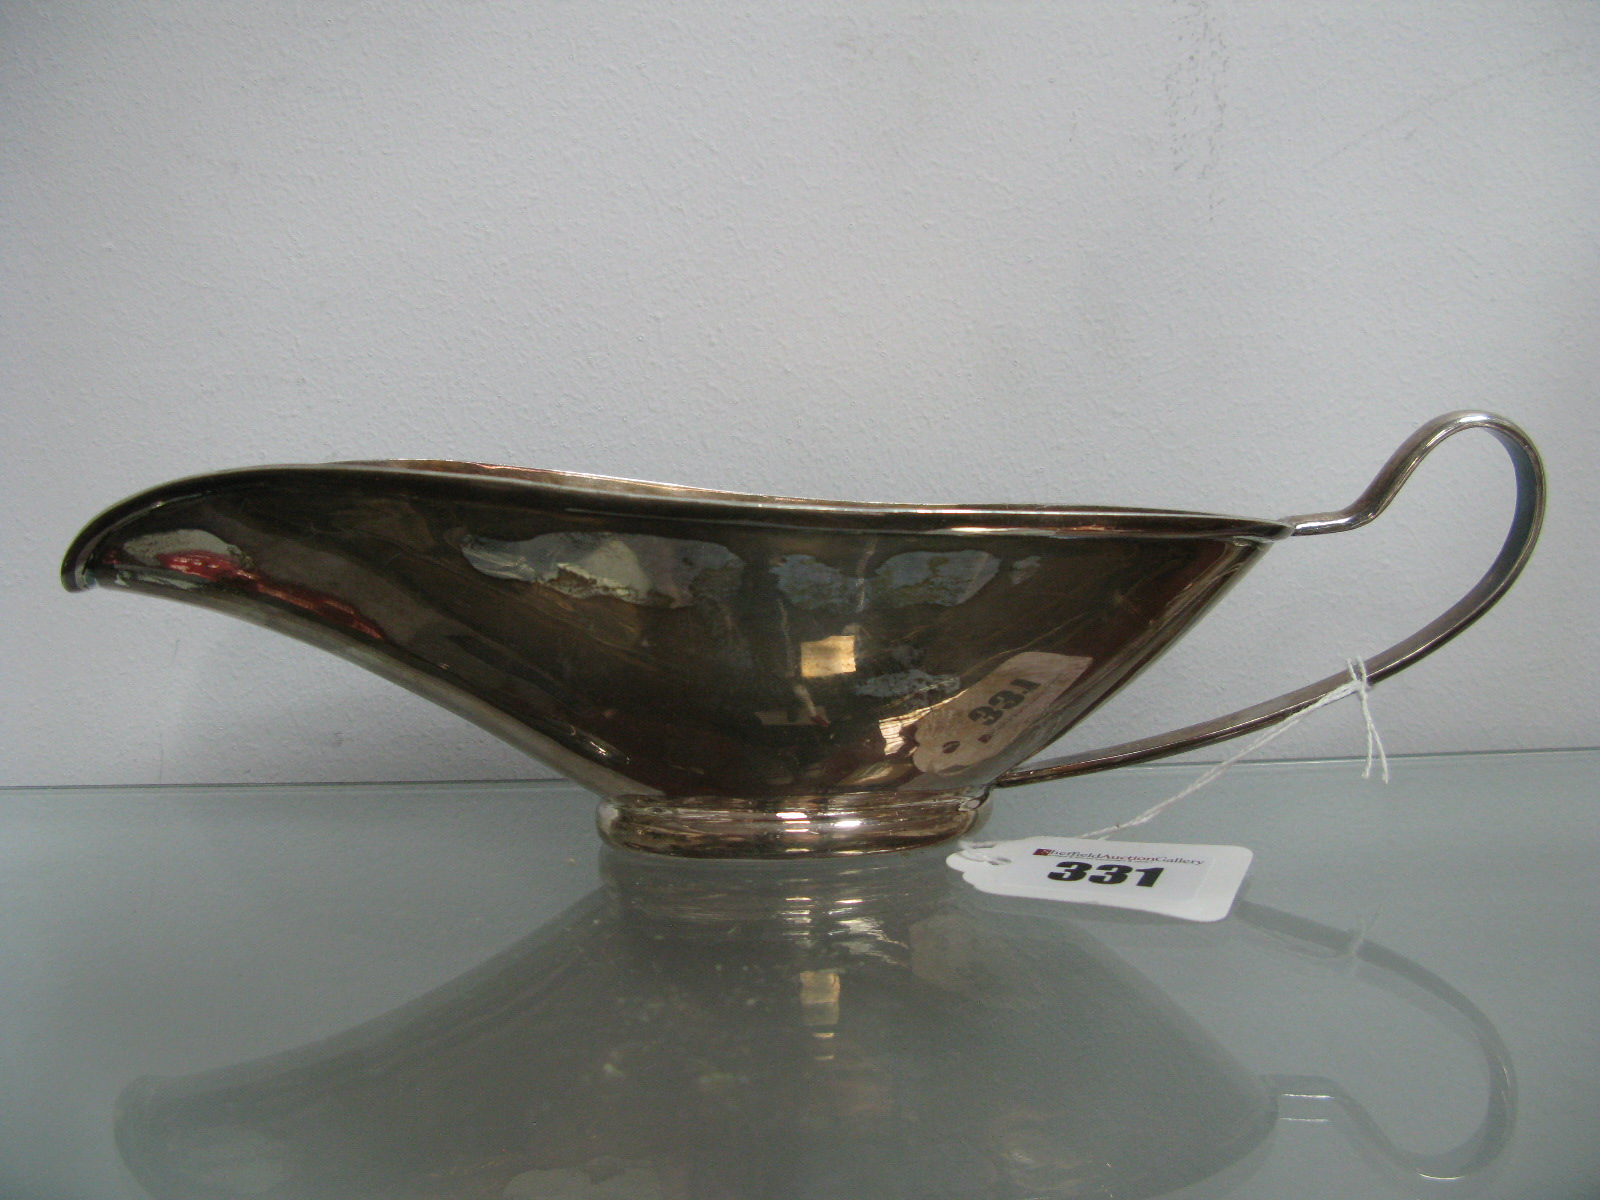 Lot 331 - A Modernist Style Sauce / Gravy Boat, of stylised elongated form, with loop handle, on oval rim